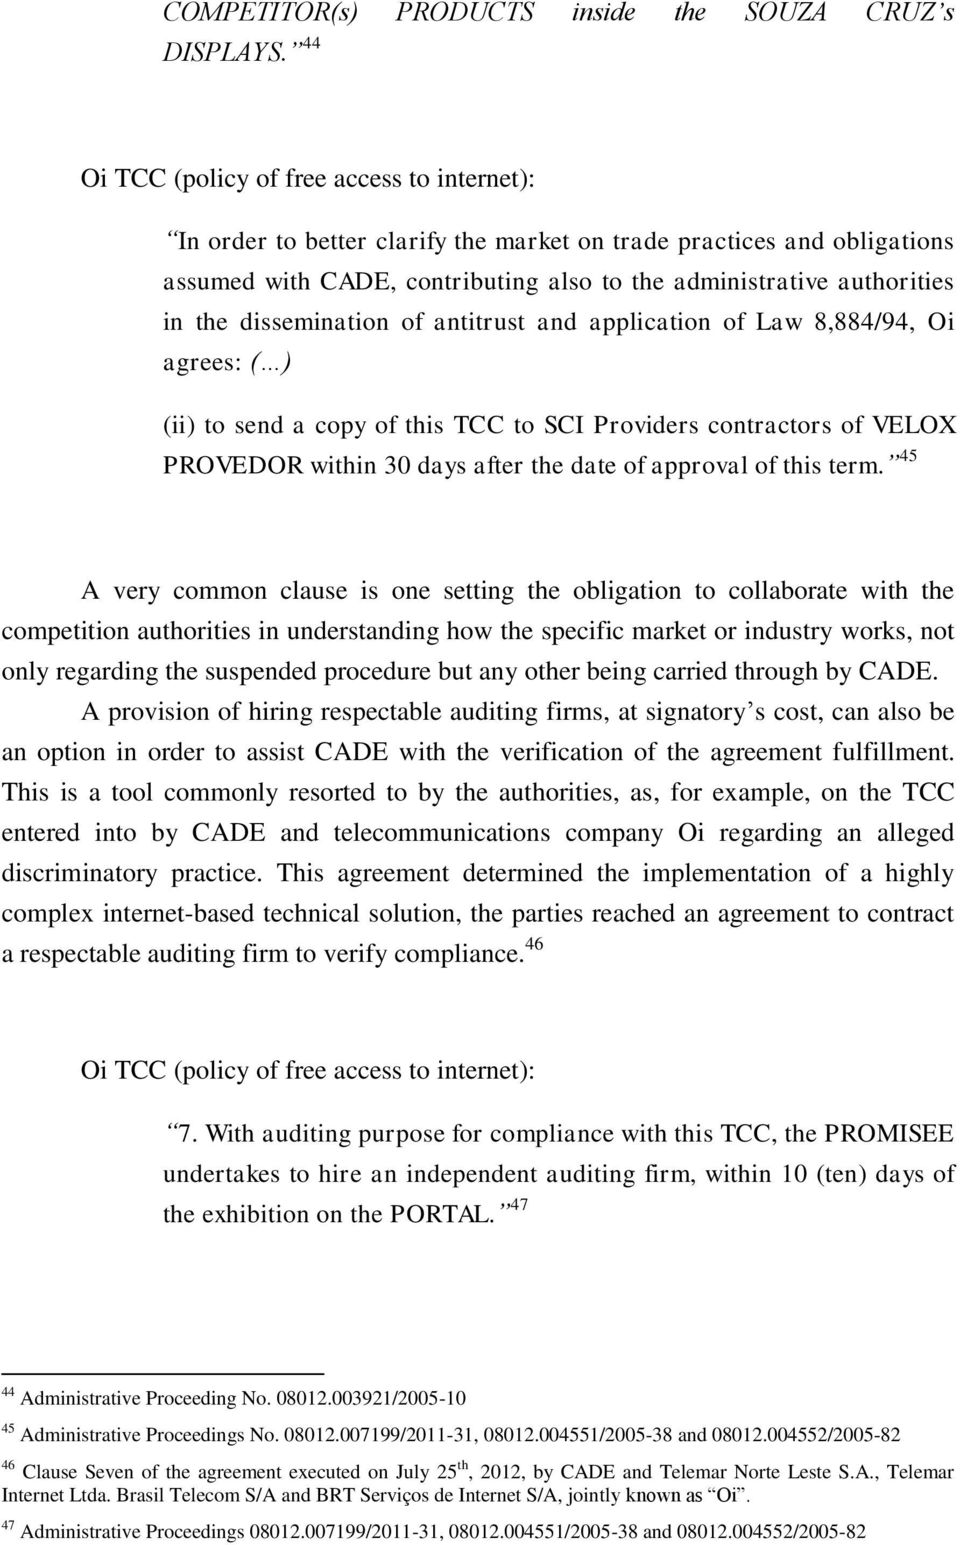 dissemination of antitrust and application of Law 8,884/94, Oi agrees: ( ) (ii) to send a copy of this TCC to SCI Providers contractors of VELOX PROVEDOR within 30 days after the date of approval of